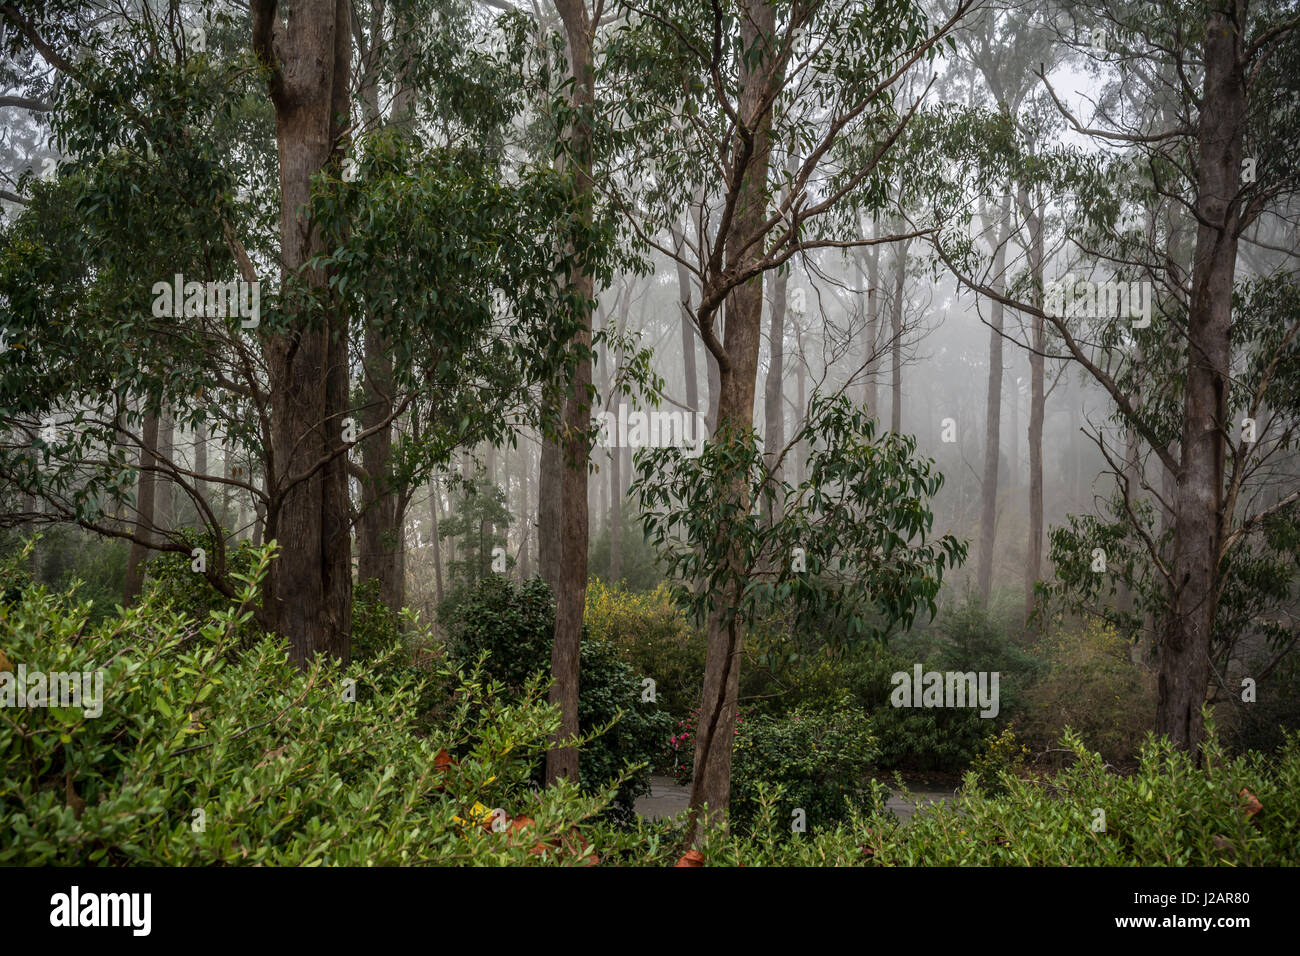 The majestic gum trees of Mount Lofty Botanic Garden, South Australia bathed in Fog. Situated in the Adelaide Hills, - Stock Image